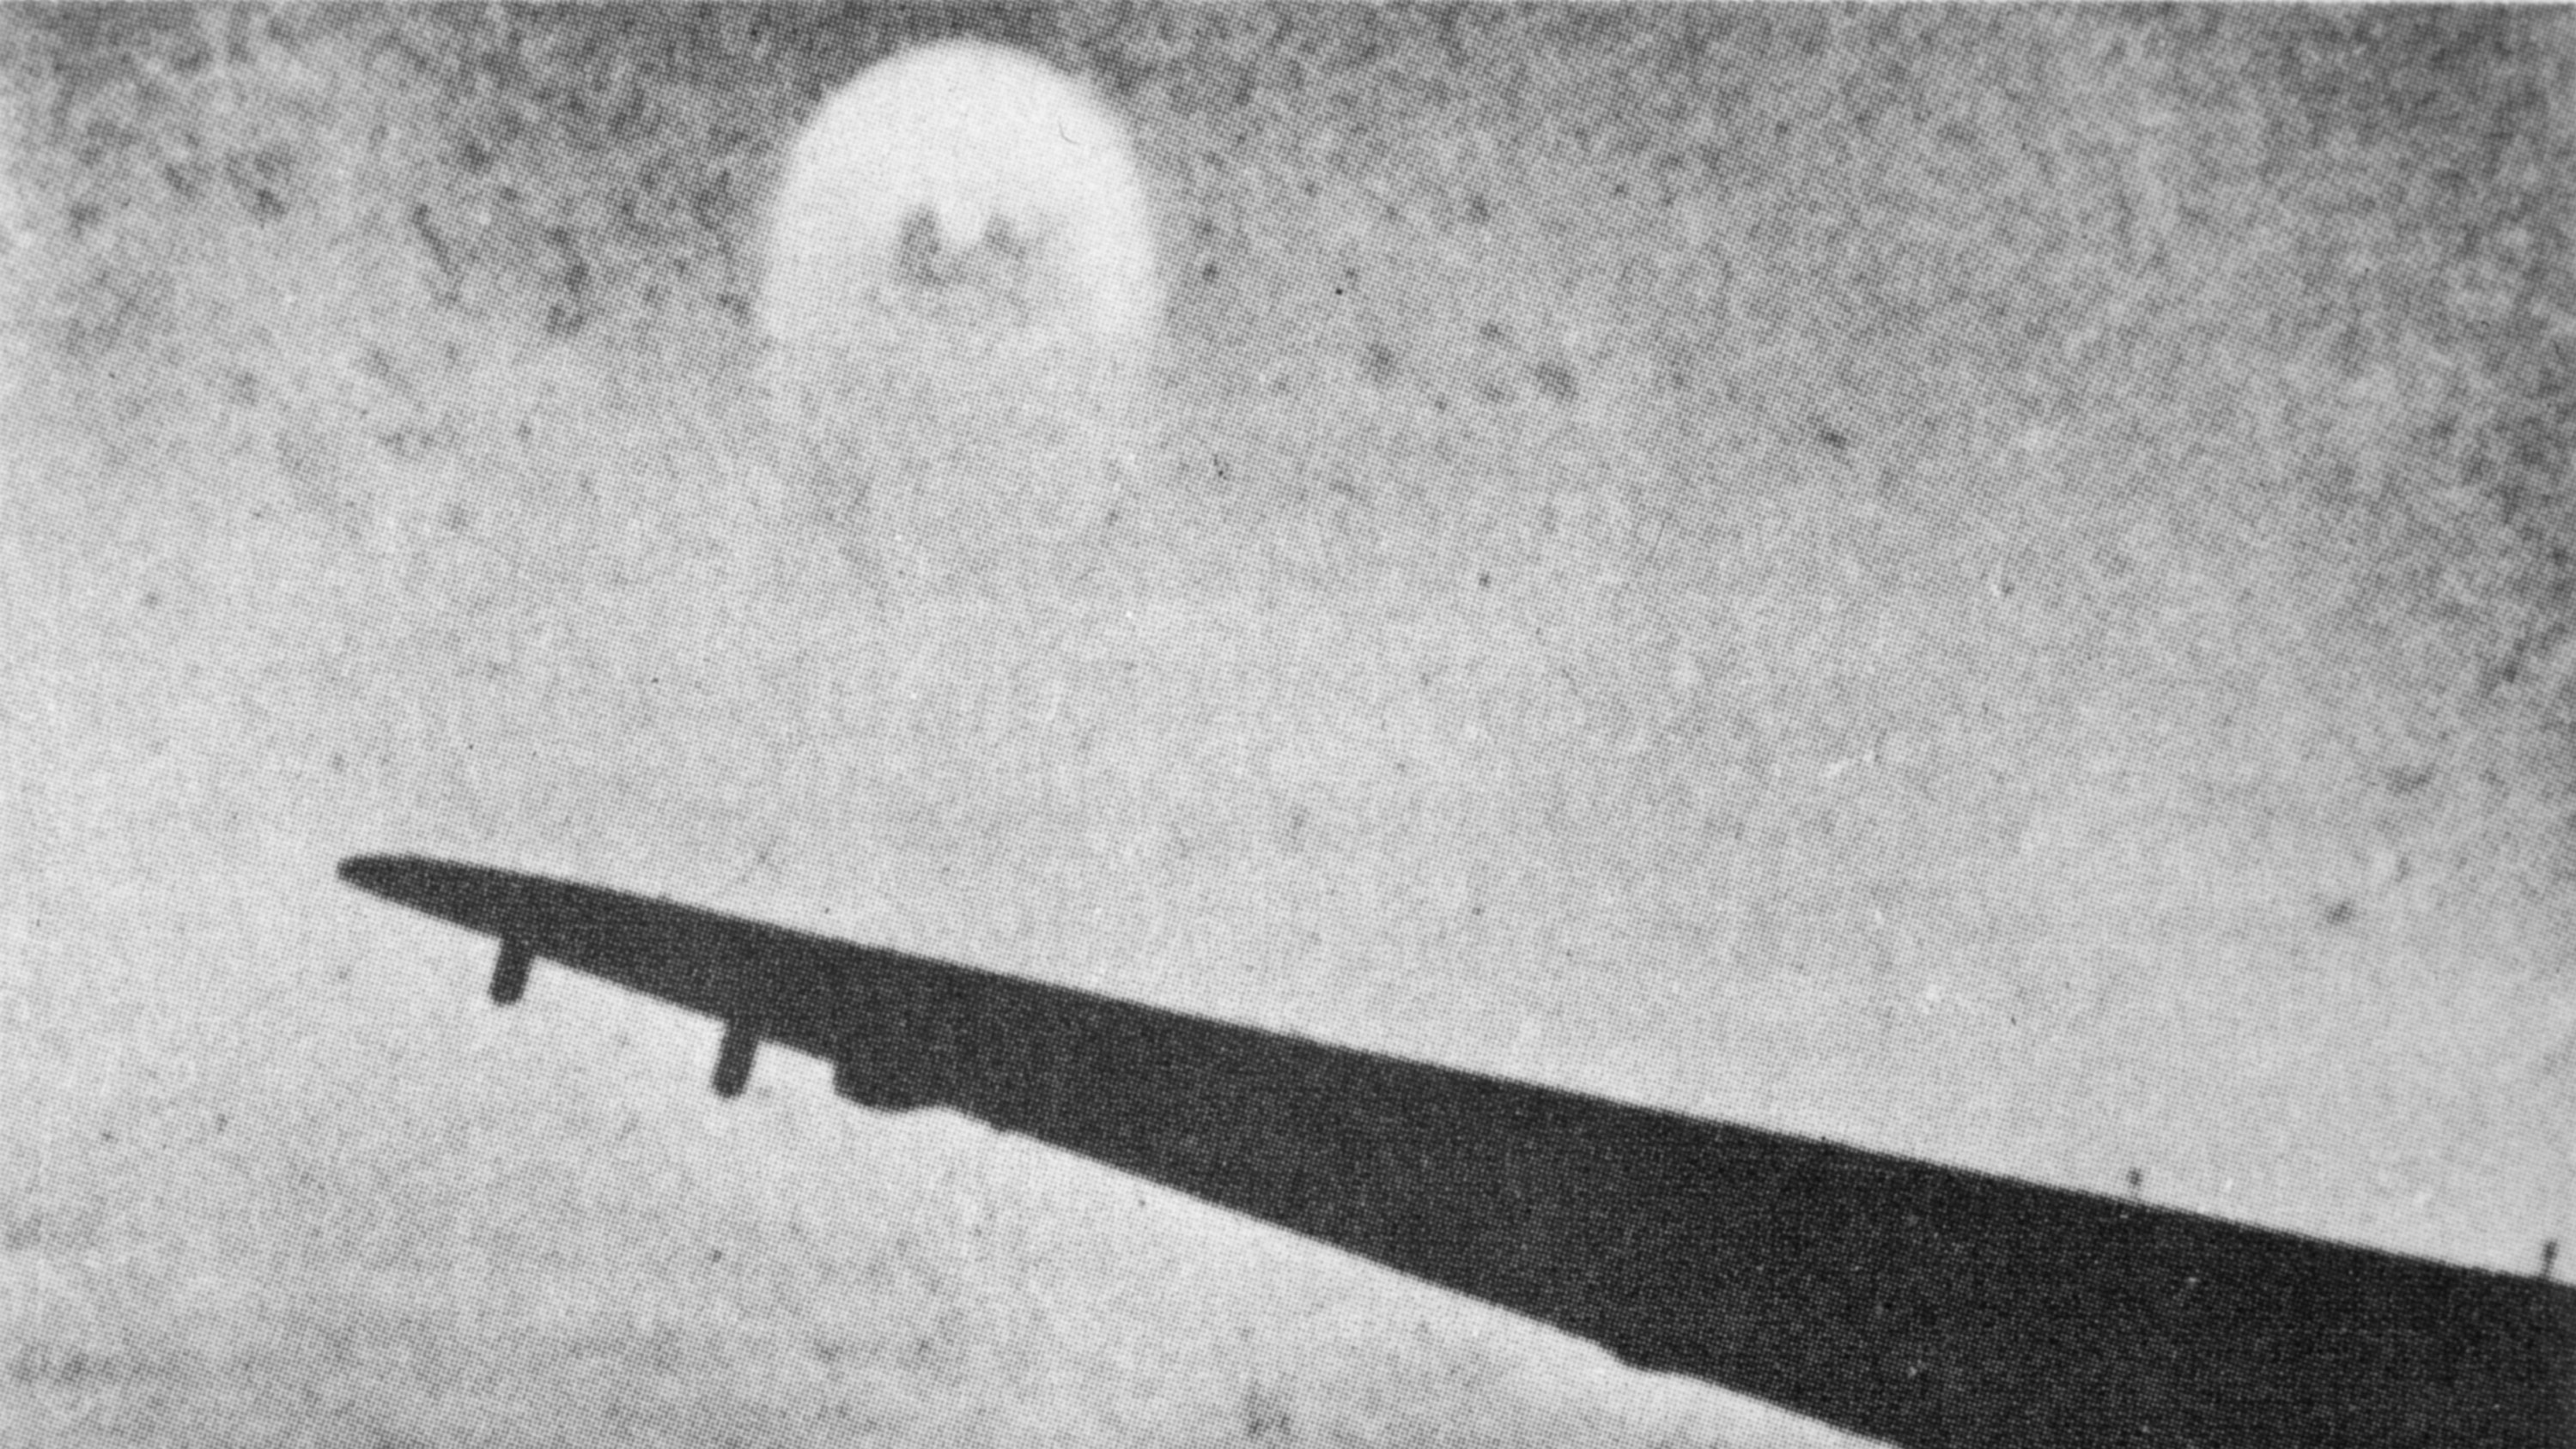 Mysterious UFOs Seen by WWII Airman Still Unexplained